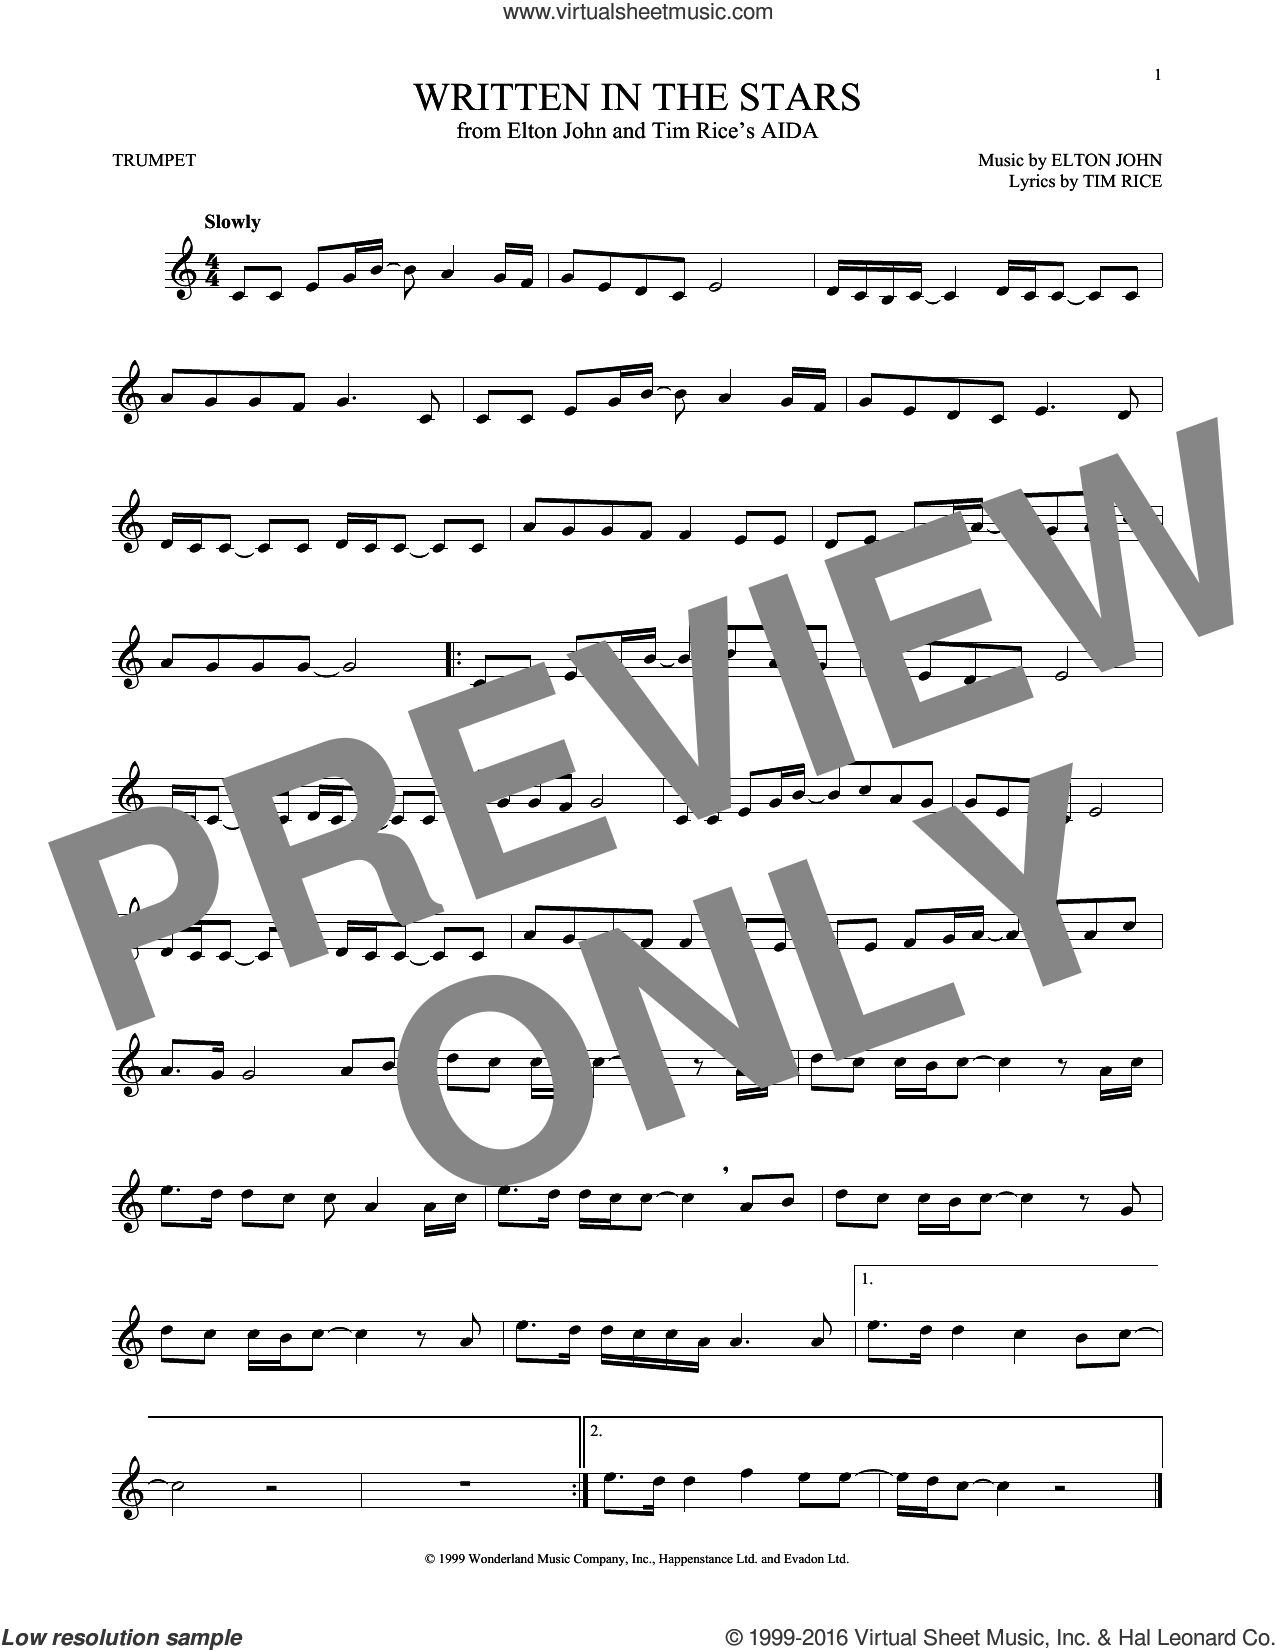 Written In The Stars sheet music for trumpet solo by Elton John and Tim Rice, intermediate skill level